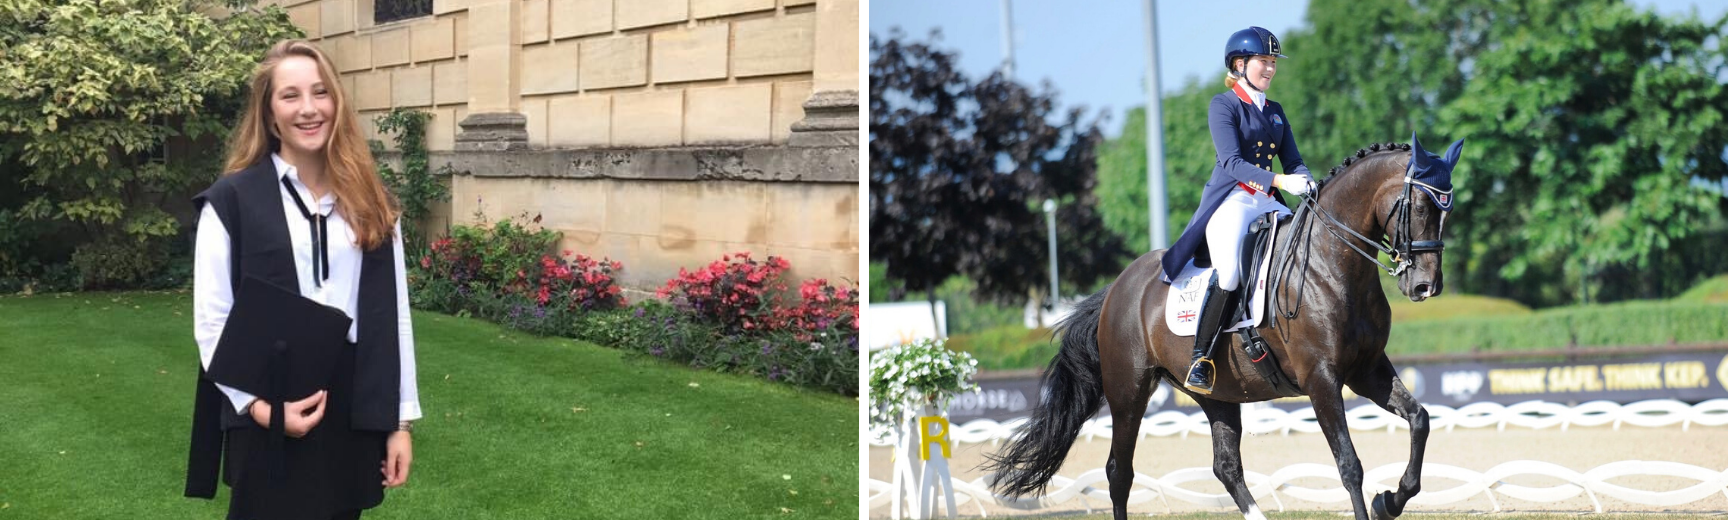 An image of Rebecca riding her horse and an image of Rebecca and her OUEC team mates holding medals